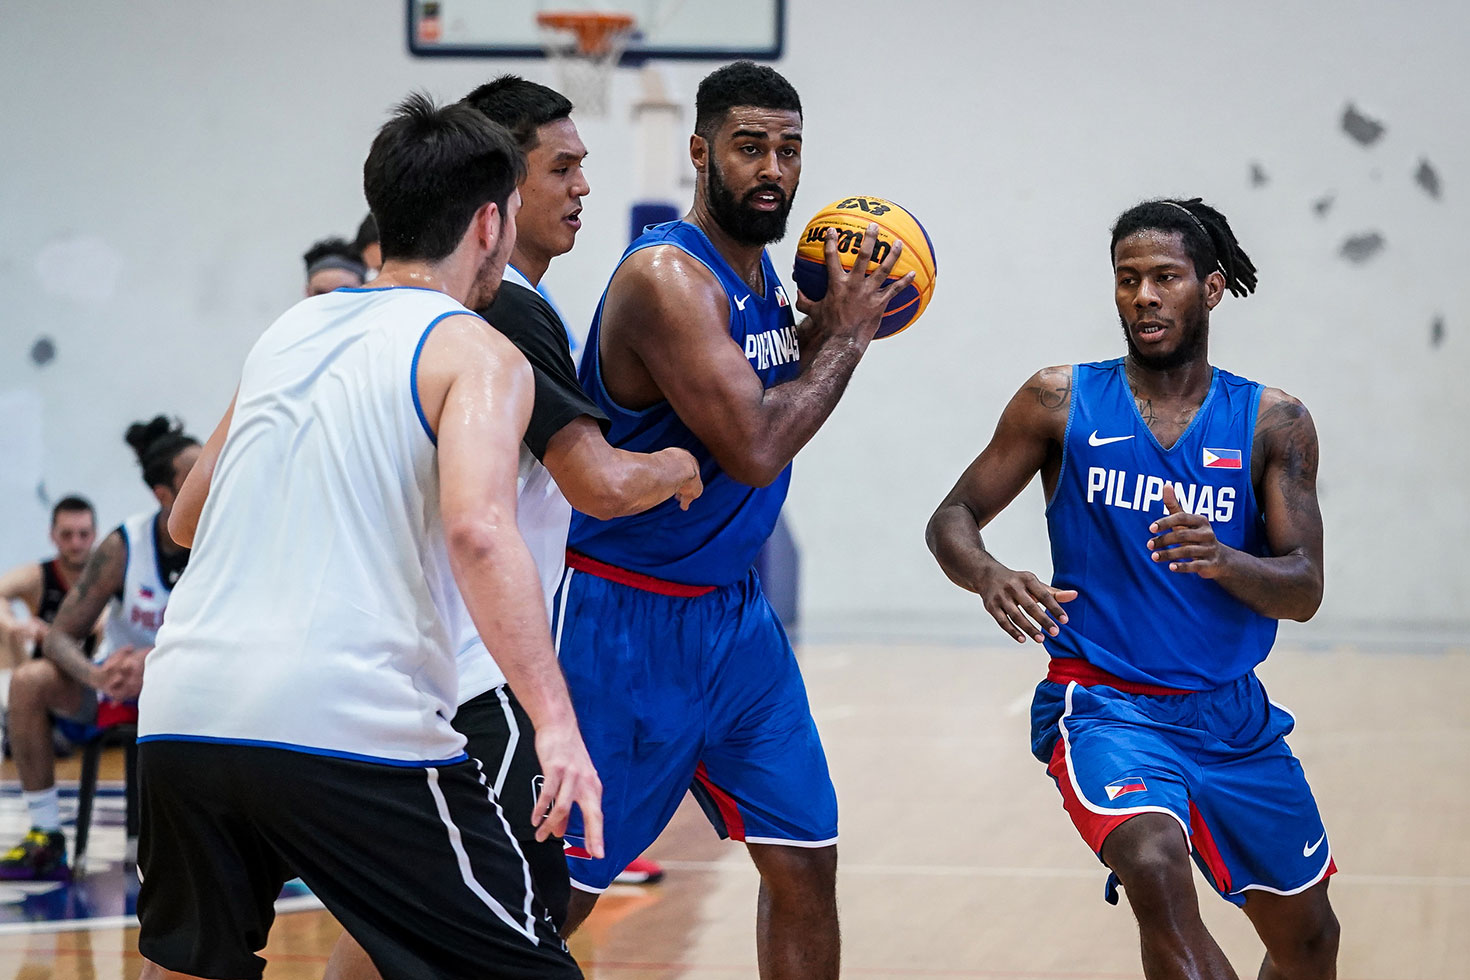 Tiebreaker Times Mo Tautuaa looks to make up for lost time with Stefan Stojacic 3x3 Basketball Basketball Gilas Pilipinas News  Stefan Stojacic Mo Tautuaa Gilas Pilipinas 3x3 2020 FIBA 3X3 Olympic Qualifying Tournament